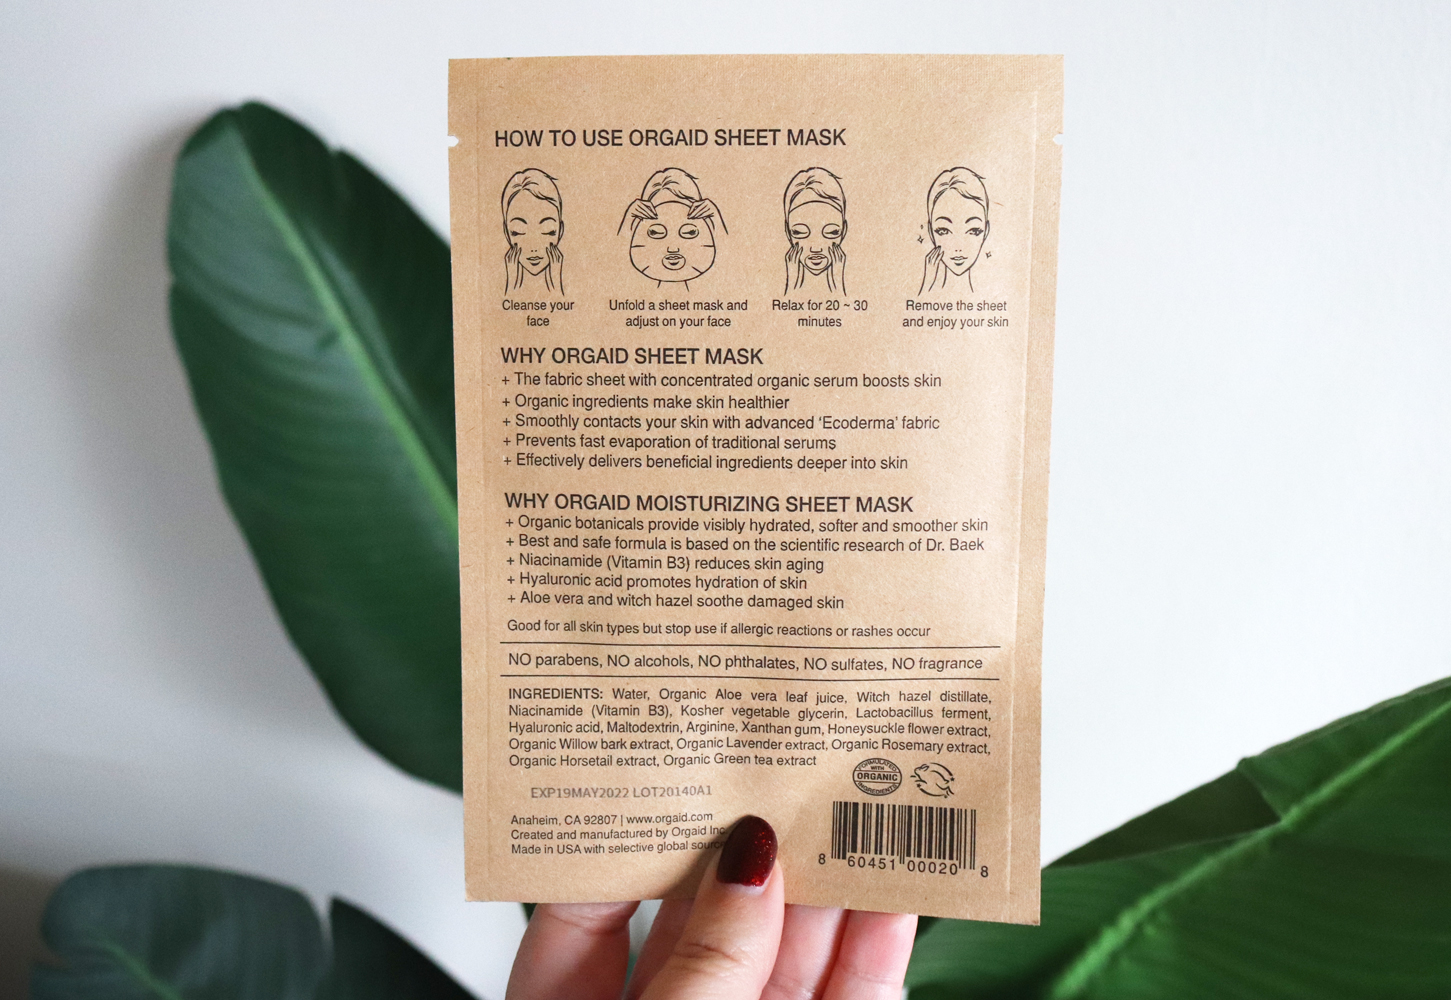 Cruelty free beauty from Cynaglow - ORGAID organic sheet mask review